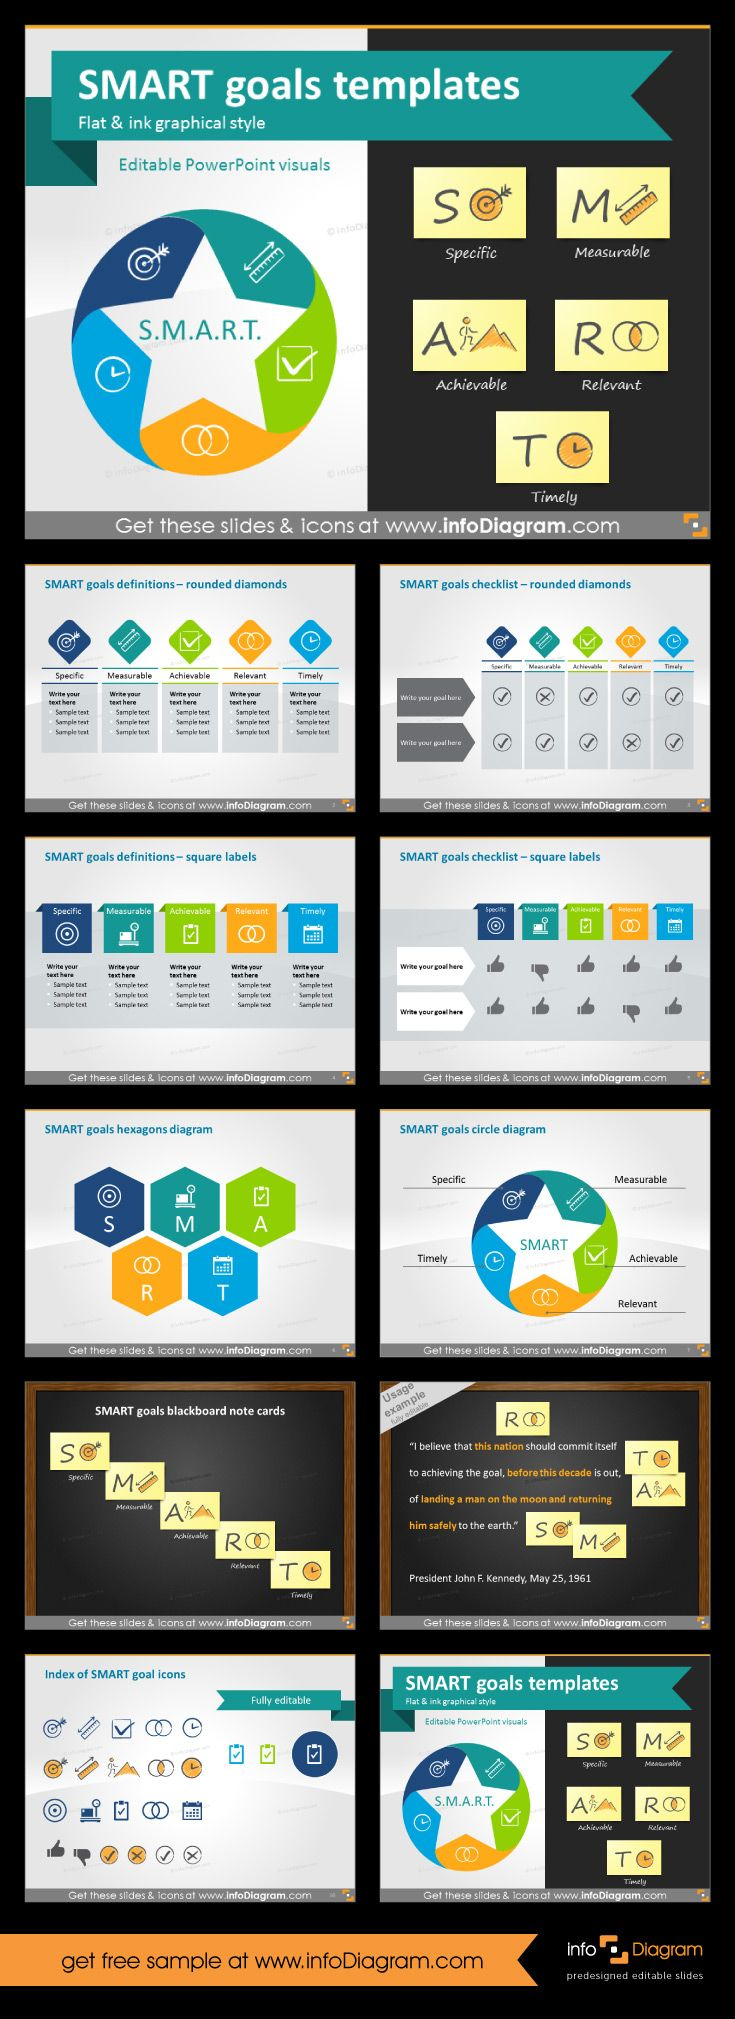 SMART goals setting graphics for business presentations.  Explanation of S.M.A.R.T. acronym. Defining goals a Specific, Measurable, Achievable, Related and Timely. Flat design diagrams with simple icons and handdrawn icons